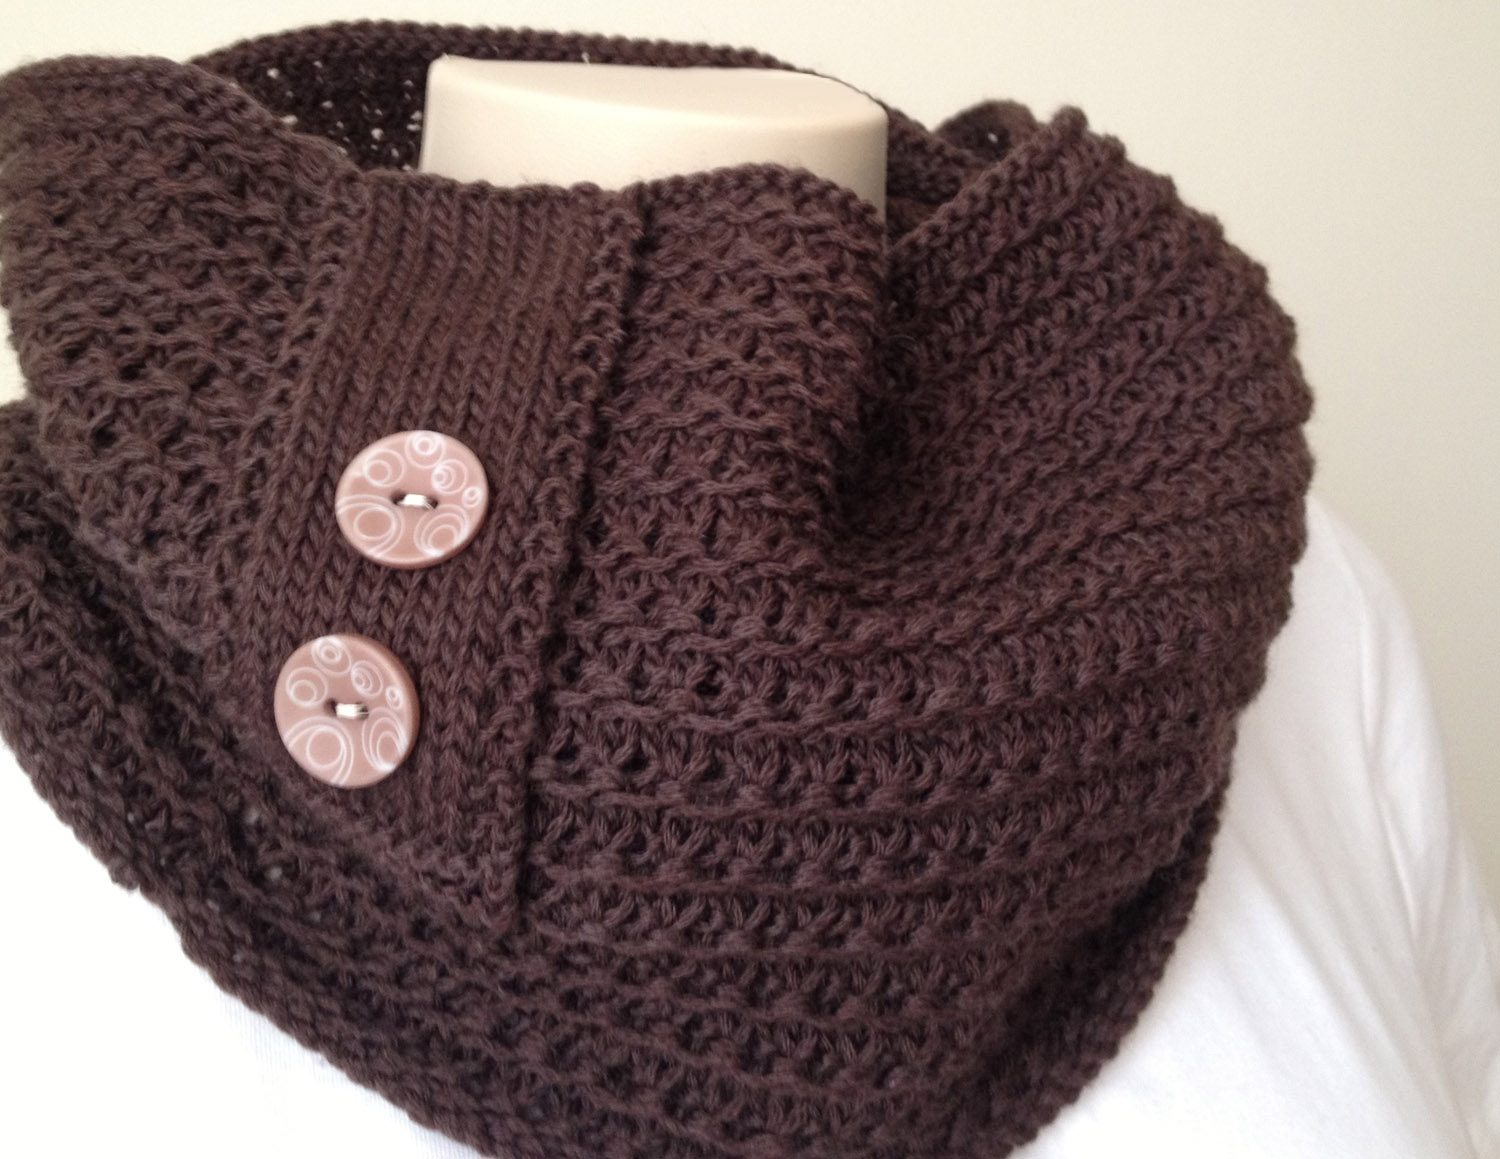 Knitting Patterns Scarf Cowl : New knitting pattern cowl : Chocolate Cowl Deux Brins de Maille